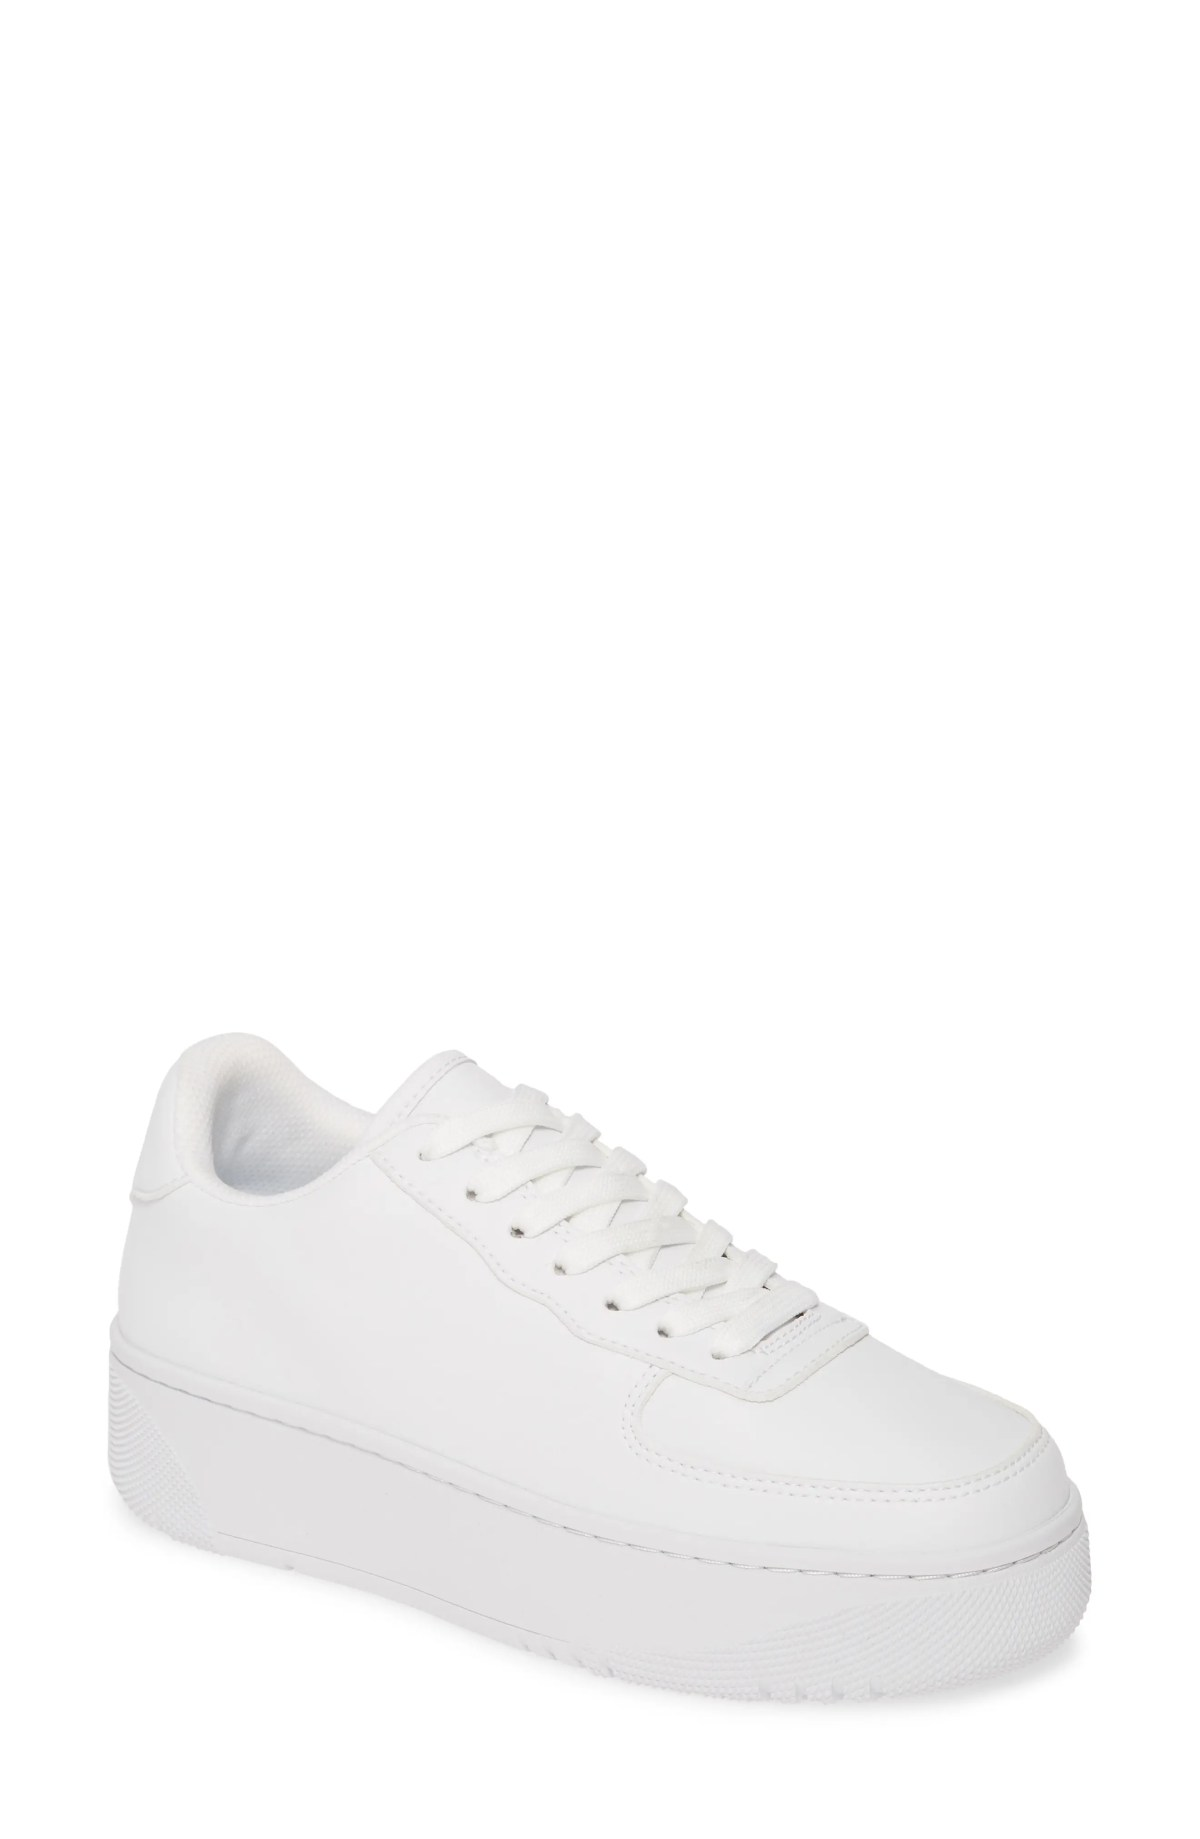 JEFFREY CAMPBELL Court Sneaker, Main, color, WHITE WHITE